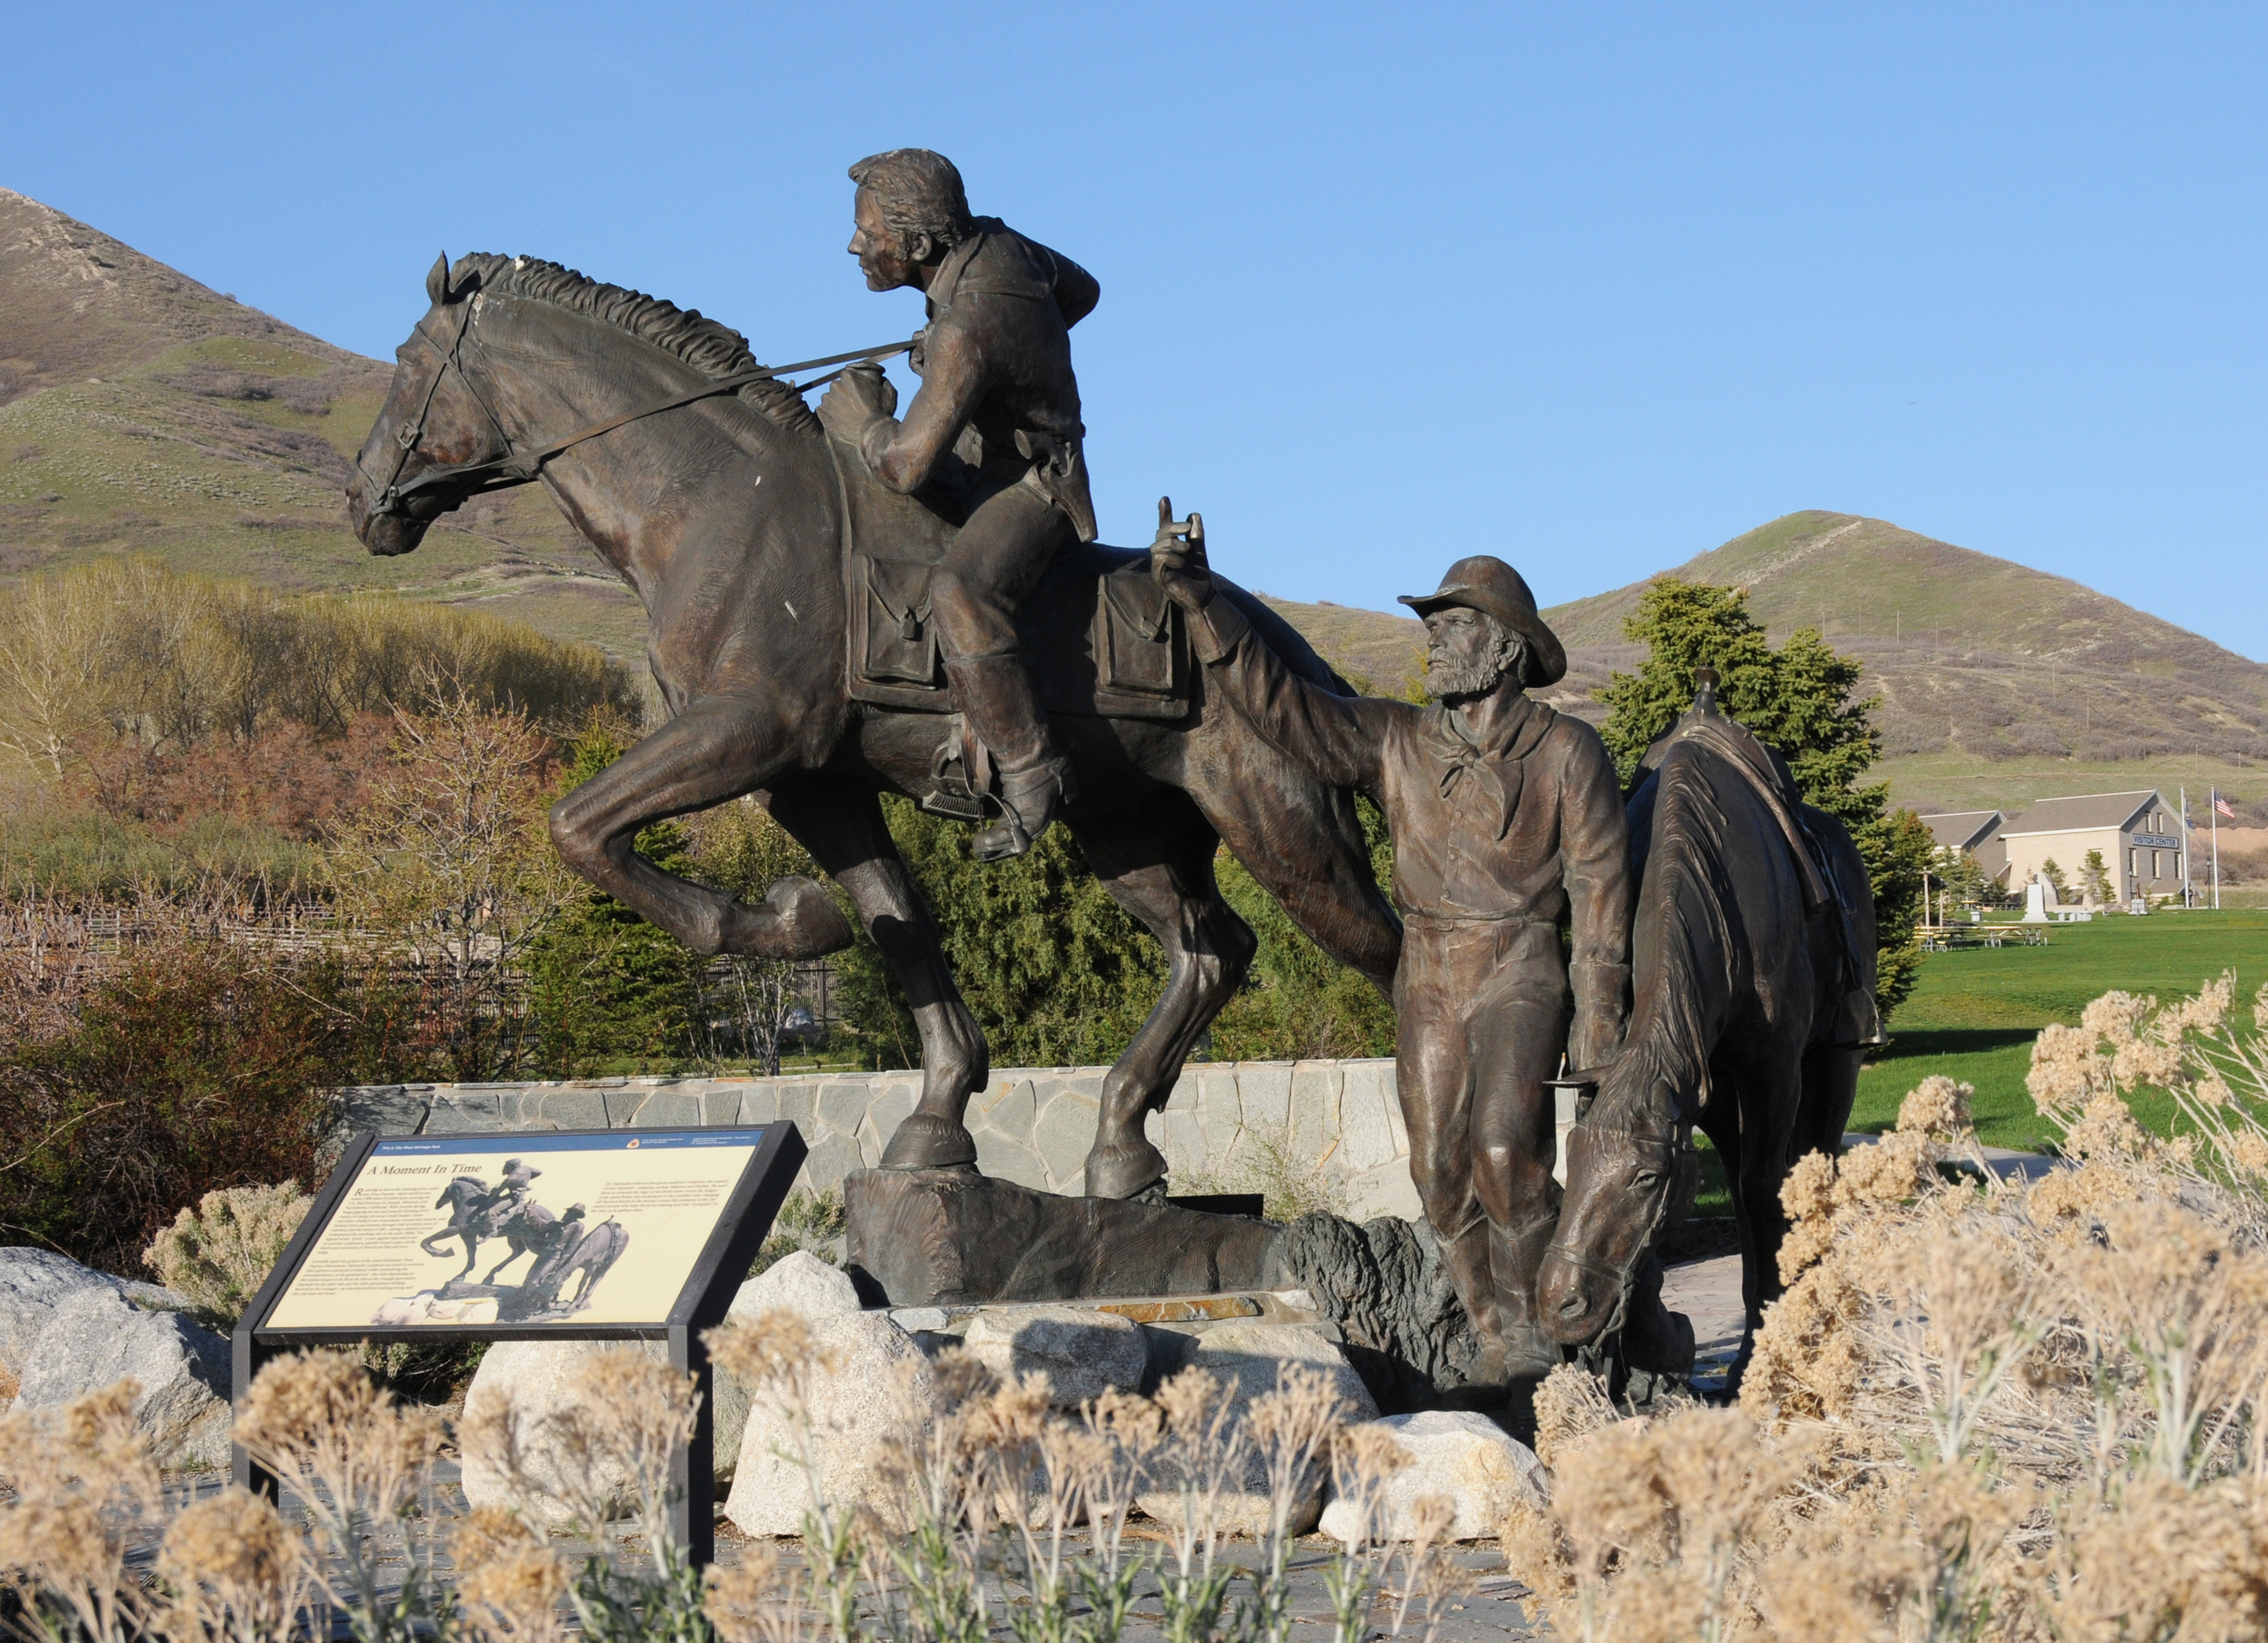 Monument to the Pony Express at This Is the Place Heritage Park, Salt Lake City, Utah.